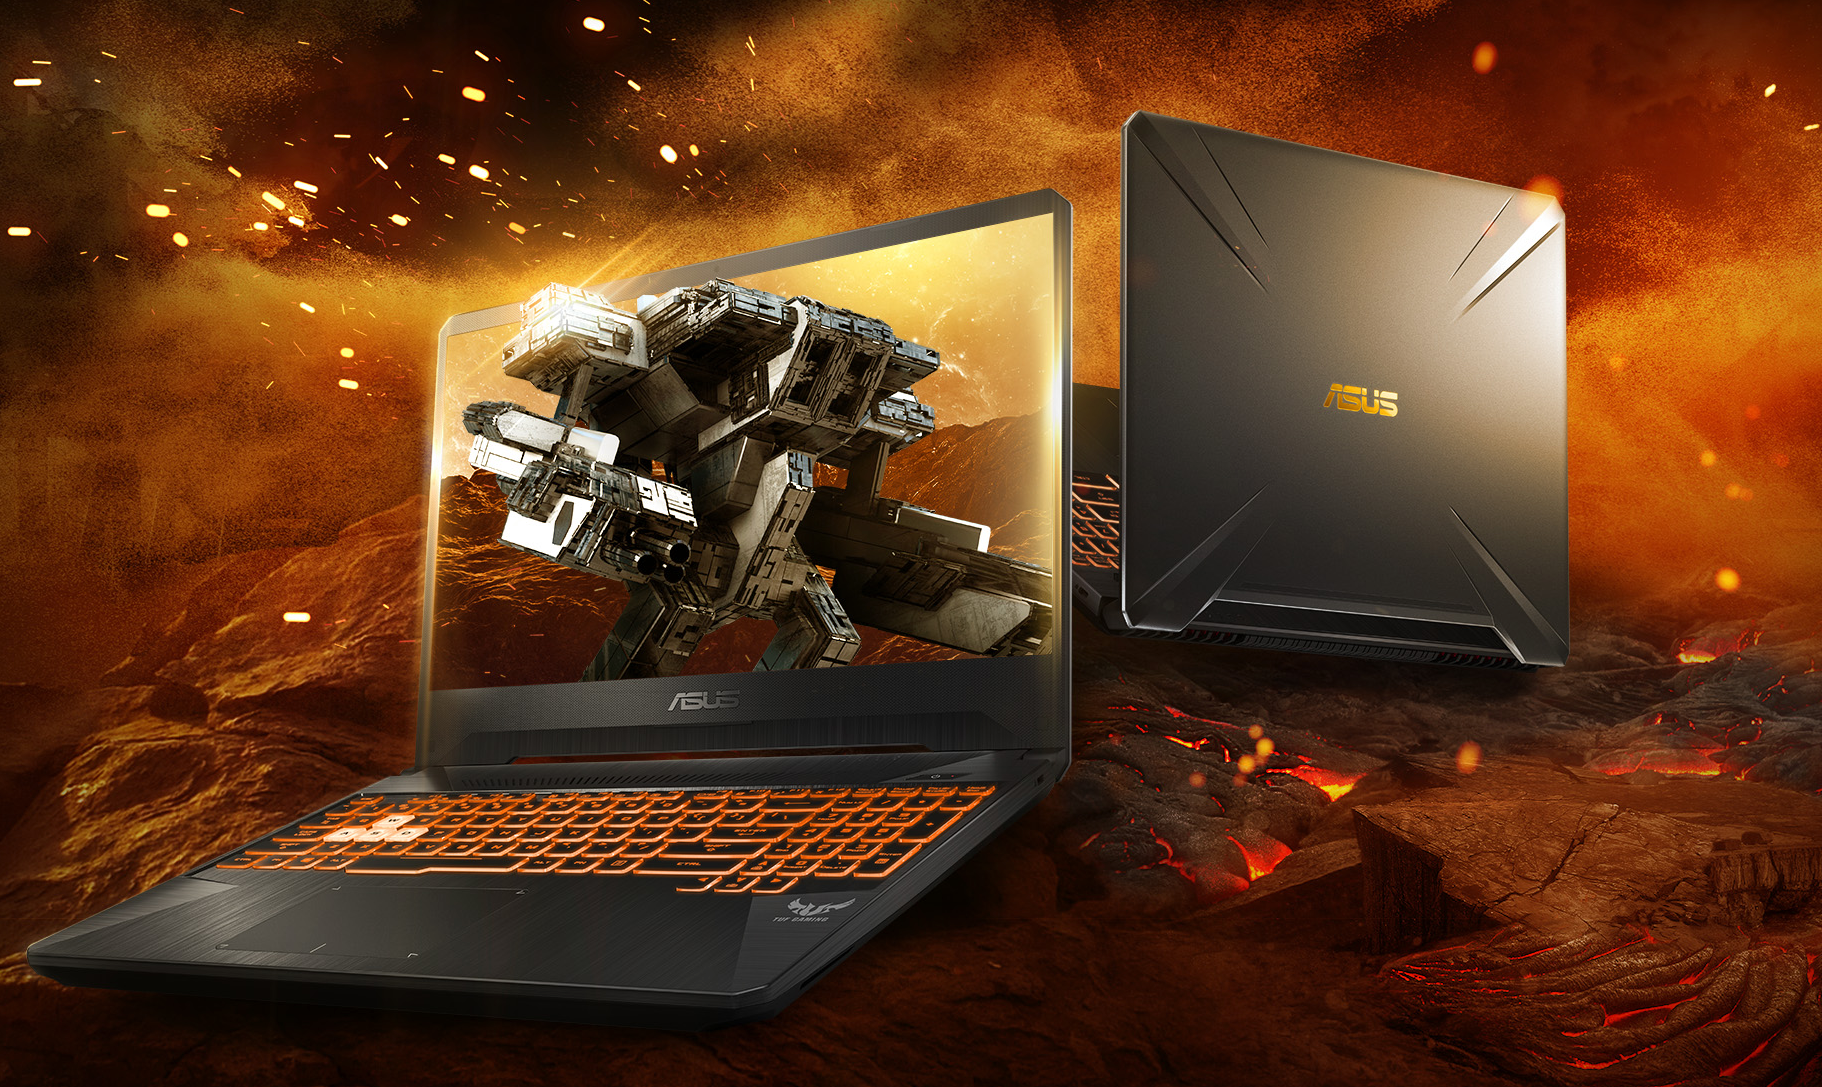 ASUS Notebooks Get AMD Ryzen 3000 & NVIDIA GeForce GTX 1660 Ti